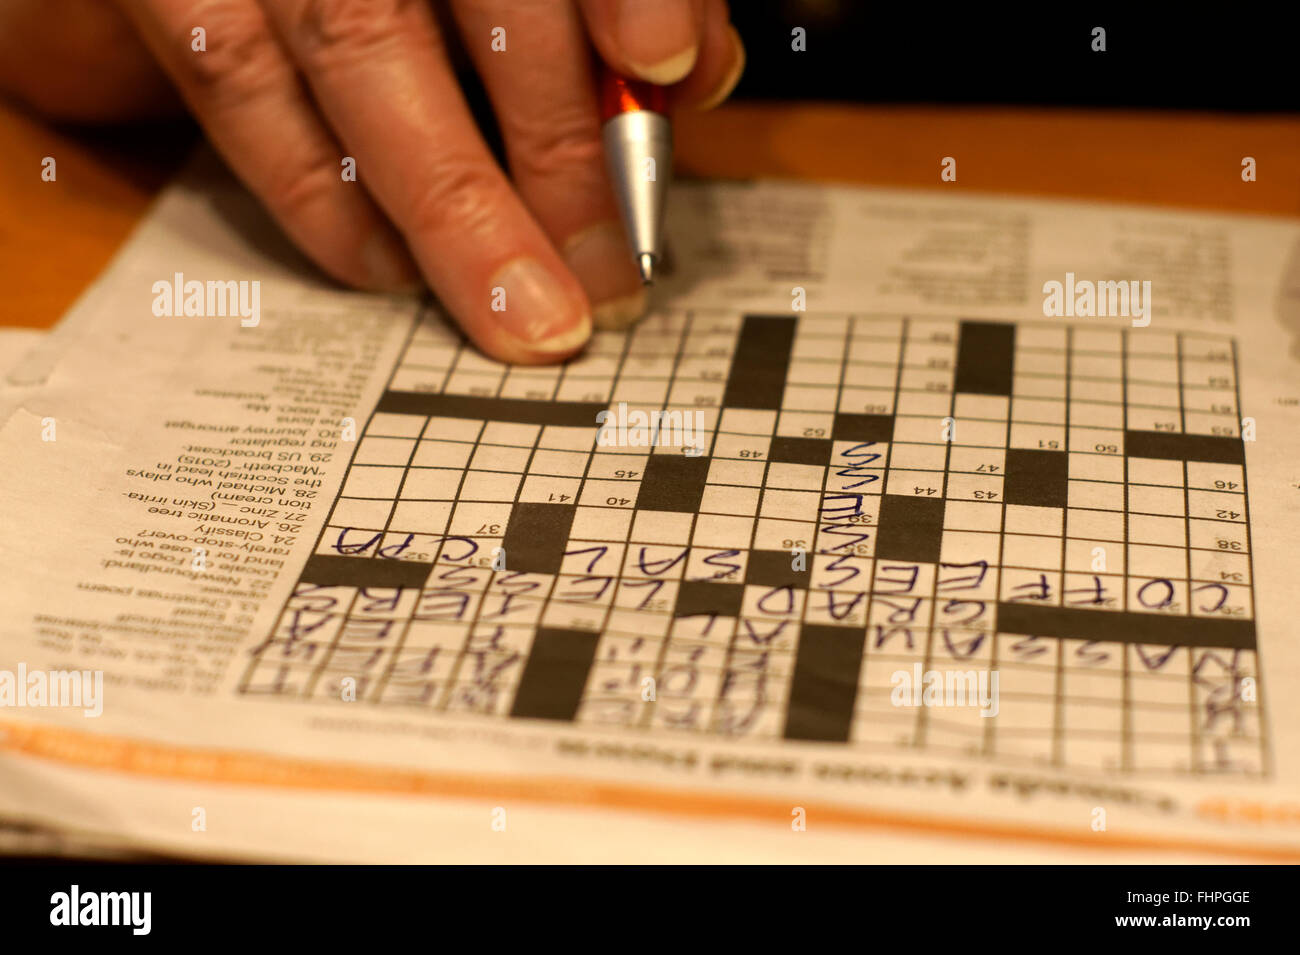 Closeup of a woman's hand, pen, and newspaper crossword puzzle - Stock Image